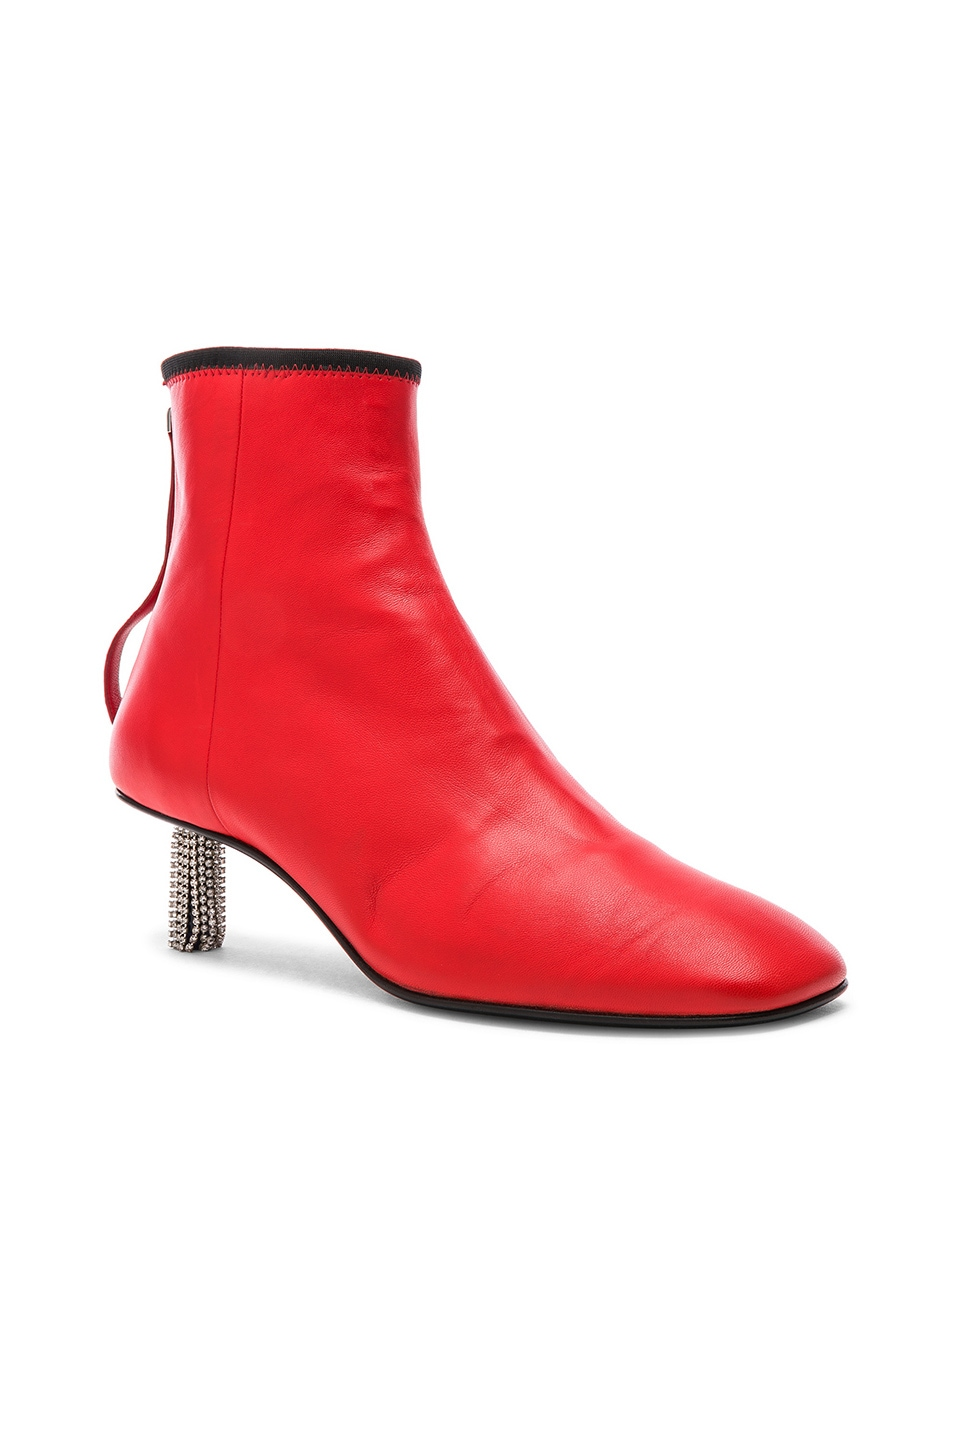 Image 2 of CALVIN KLEIN 205W39NYC Grainne Leather Crystal Heel Ankle Boots in Bright Red & Black